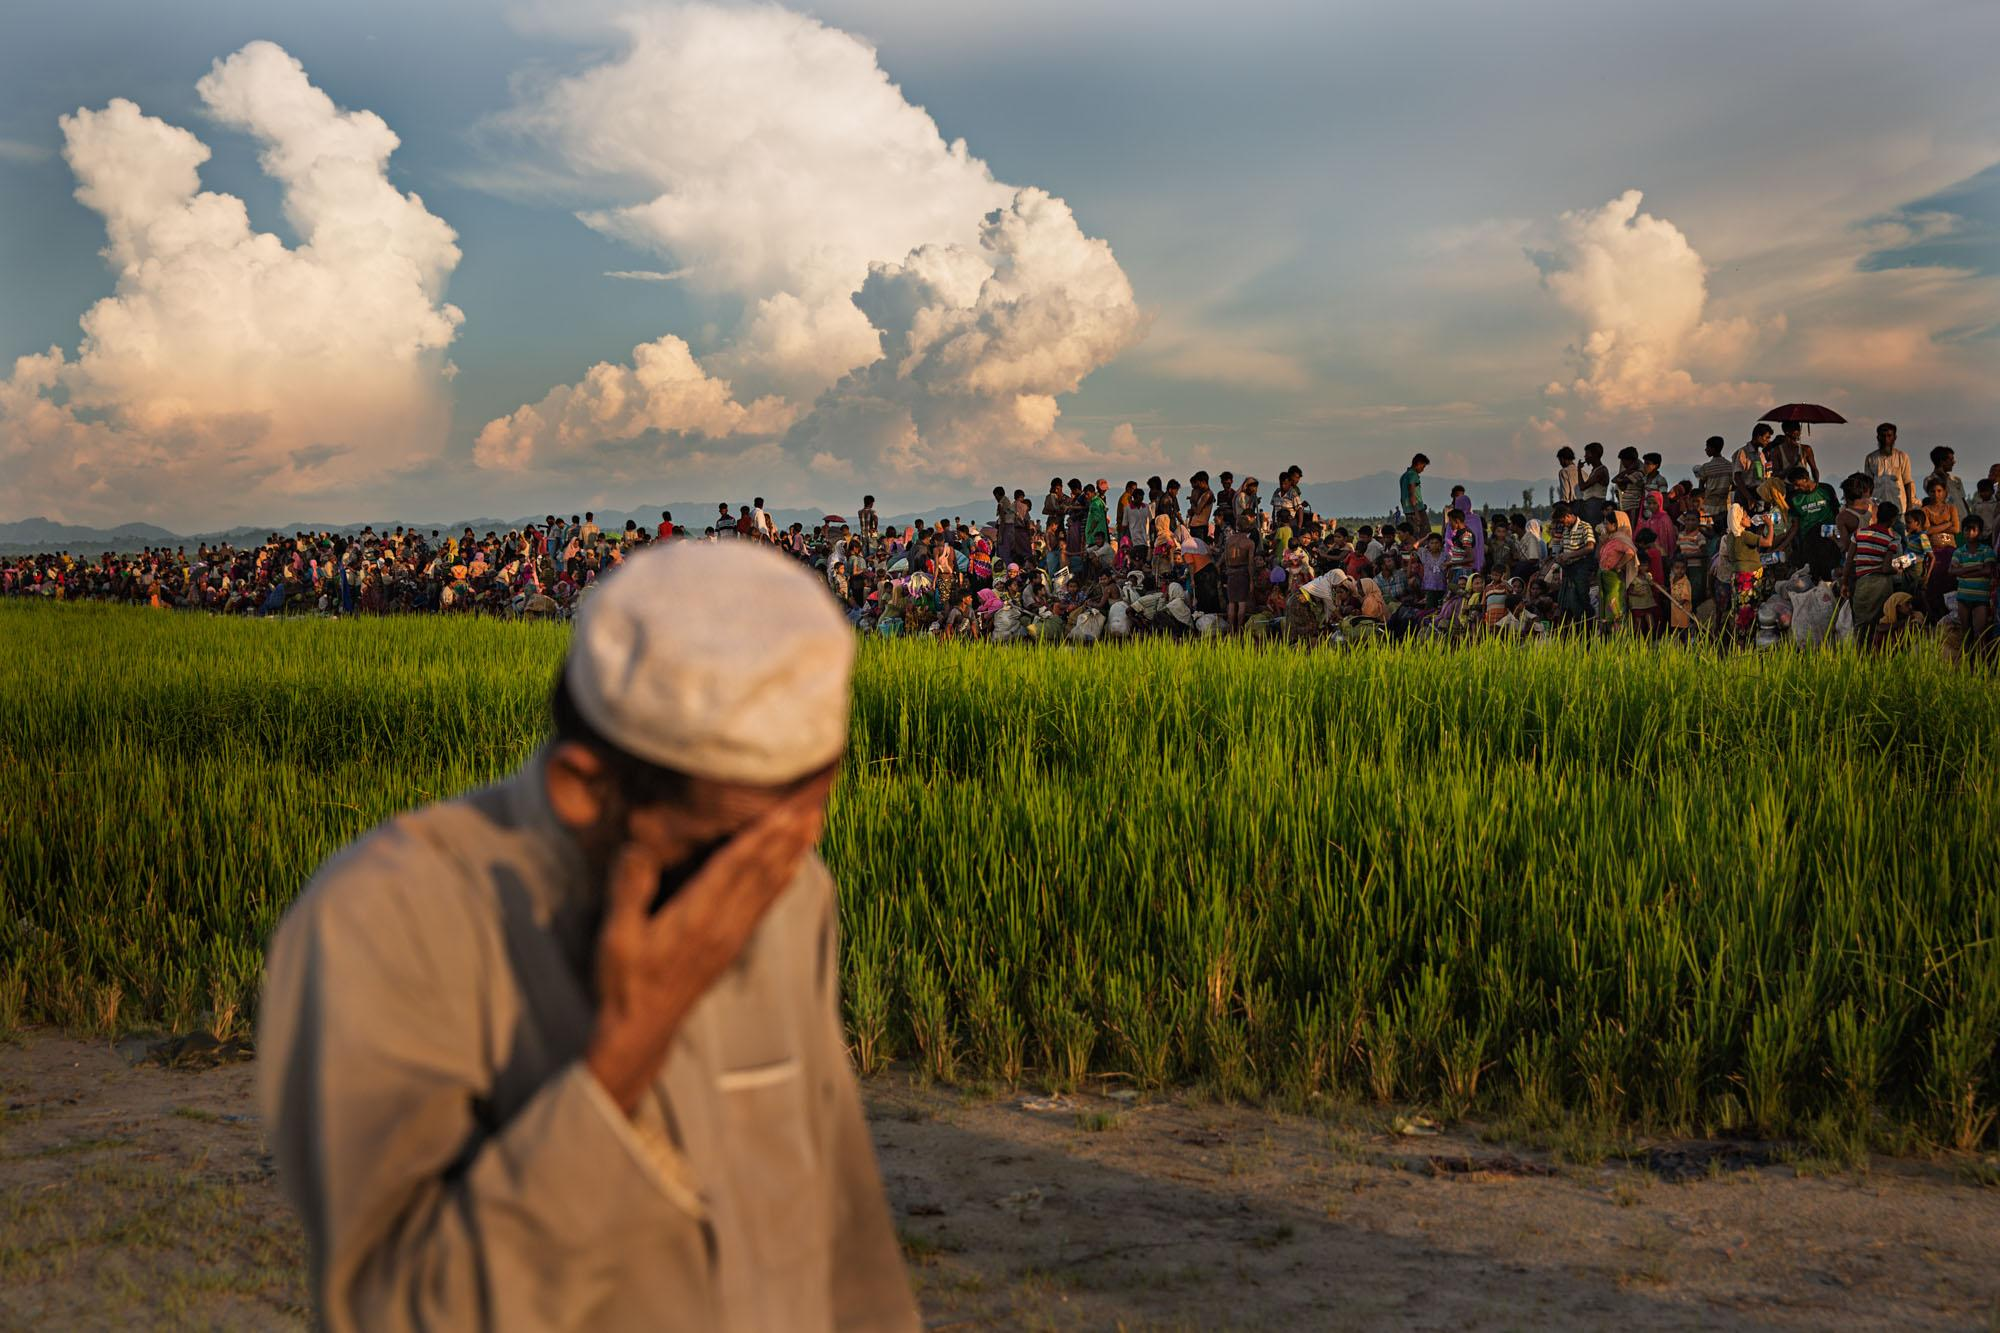 Abu Jaffar, 60, conducts his evening prayer in a rice field next to thousands of Rohingya refugees who have been waiting all day to enter the camps in Cox's Bazar after crossing the Naf River from Myanmar into Bangladesh. He made the same crossing in 1992 and has lived nearby since then. After crossing into the field to help the refugees, the Boarder Guard Bangladesh (BGB) did not believe him when he tried to explain that he was not coming from Myanmar and told him he could not leave the area.